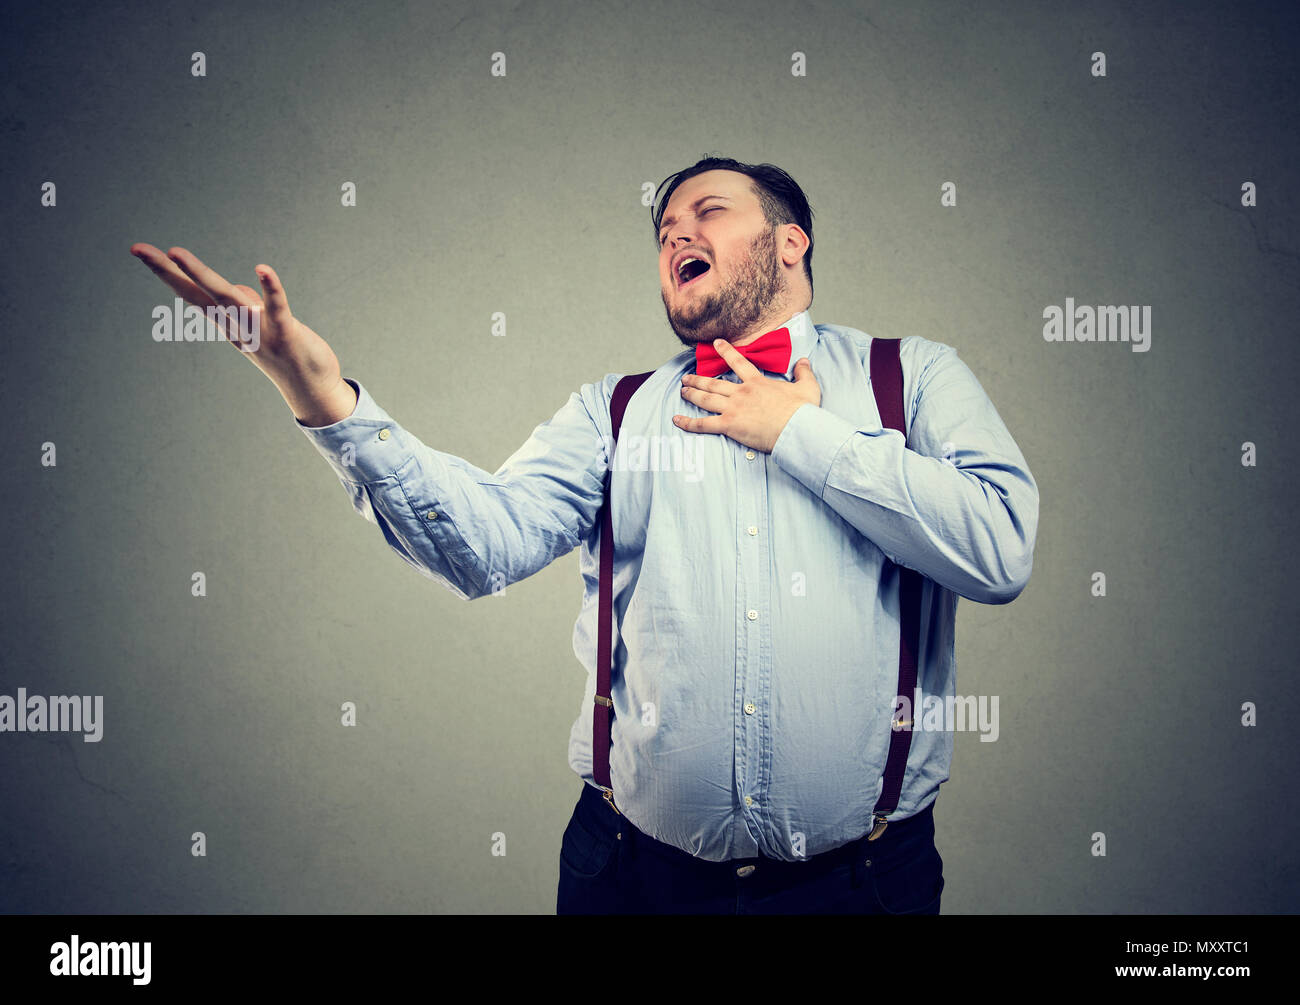 Young chubby man screaming in feelings of broken heart looking desperate while playing drama scene - Stock Image